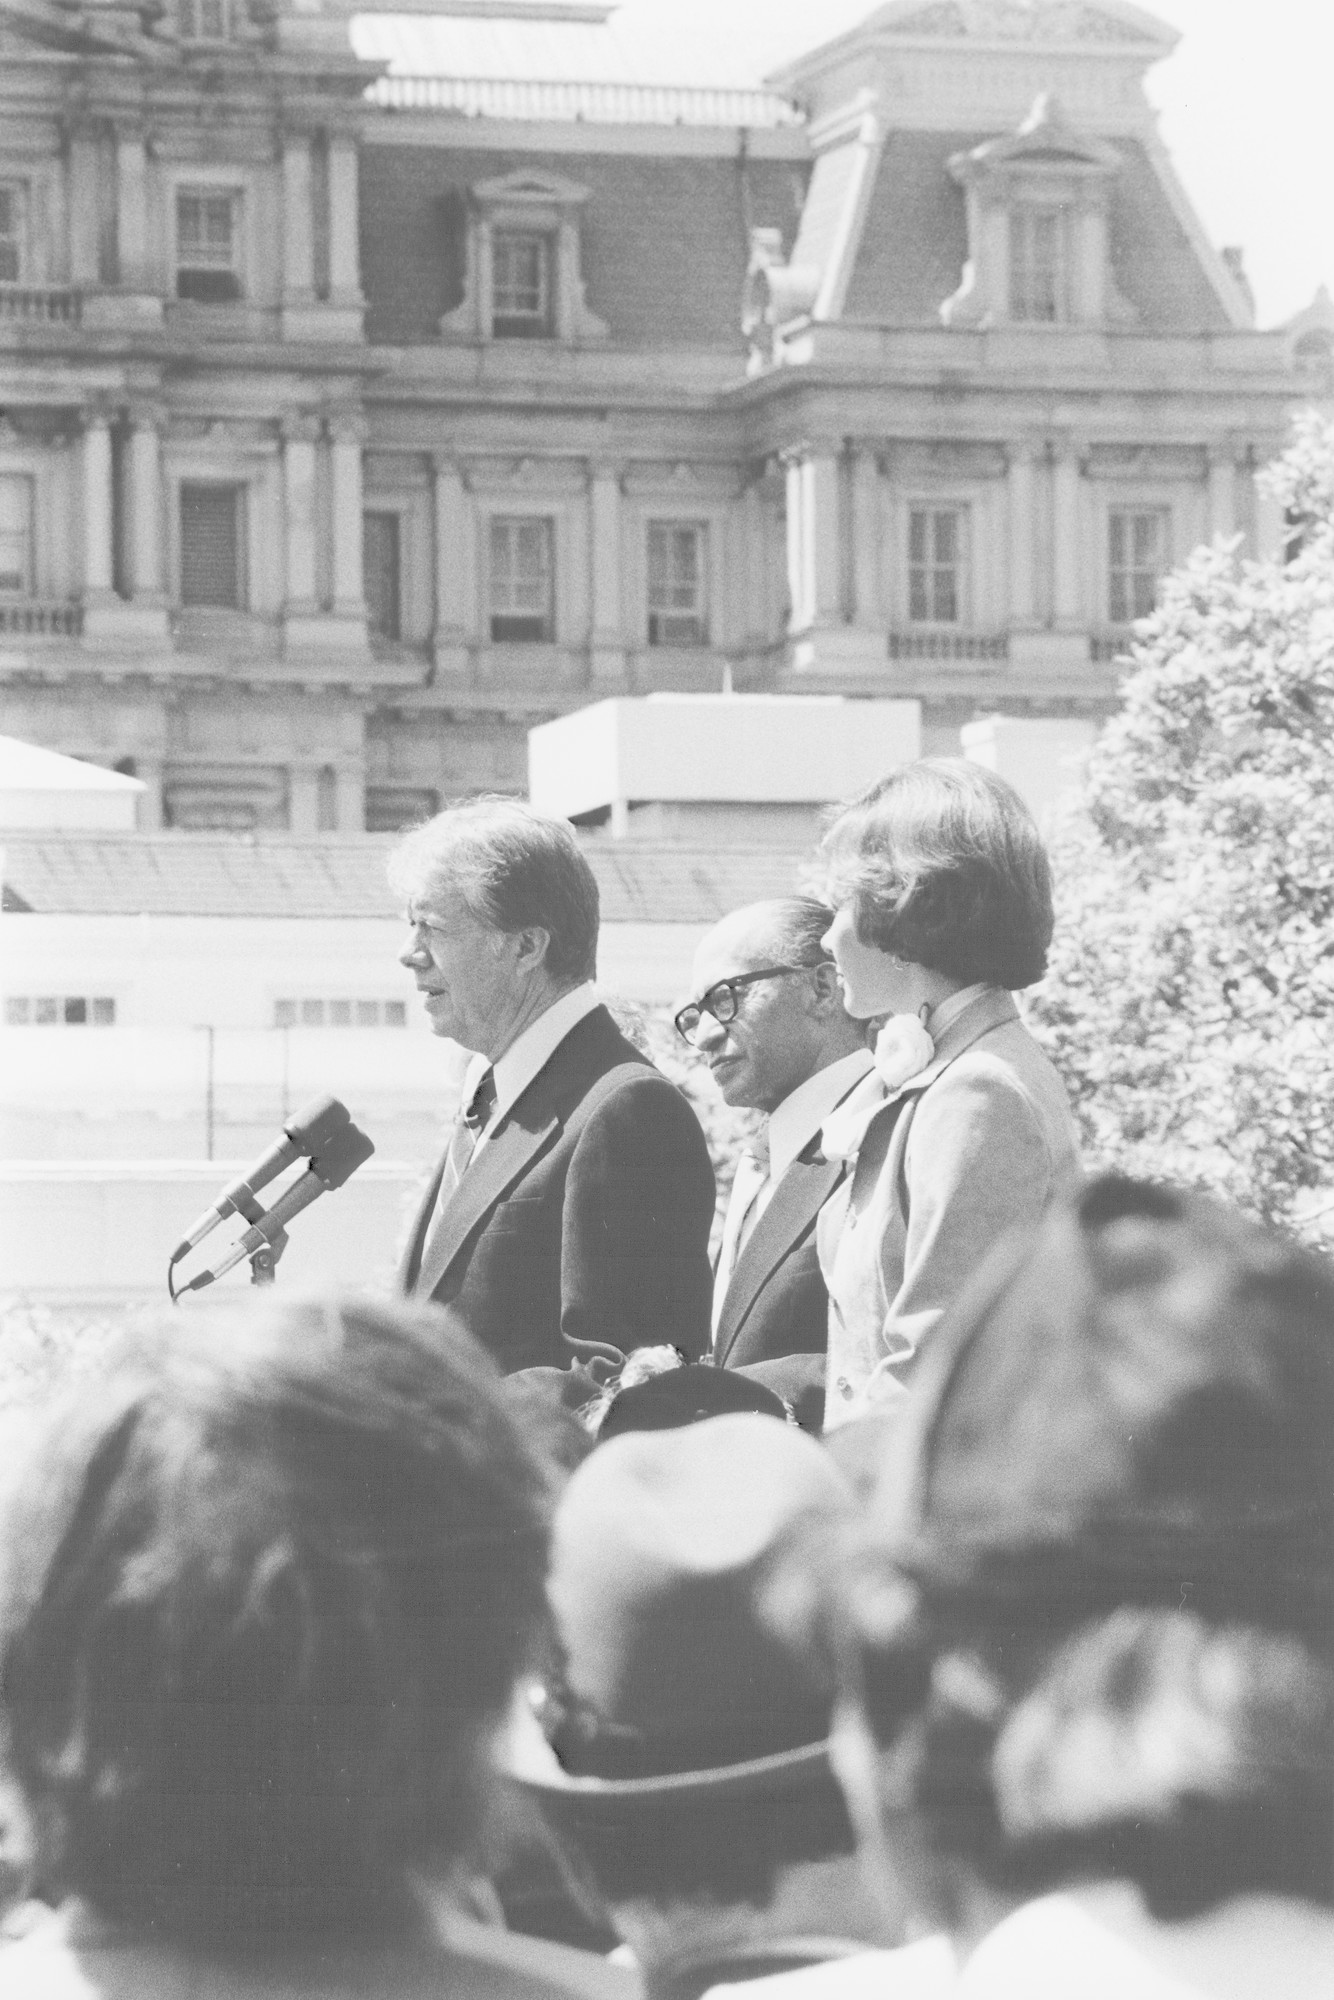 President Jimmy Carter delivers a speech at a White House ceremony marking the establishment of the Holocaust Commission.  Pictured on the podium from left to right are: President Carter, Menachem Begin and Rosalyn Carter.